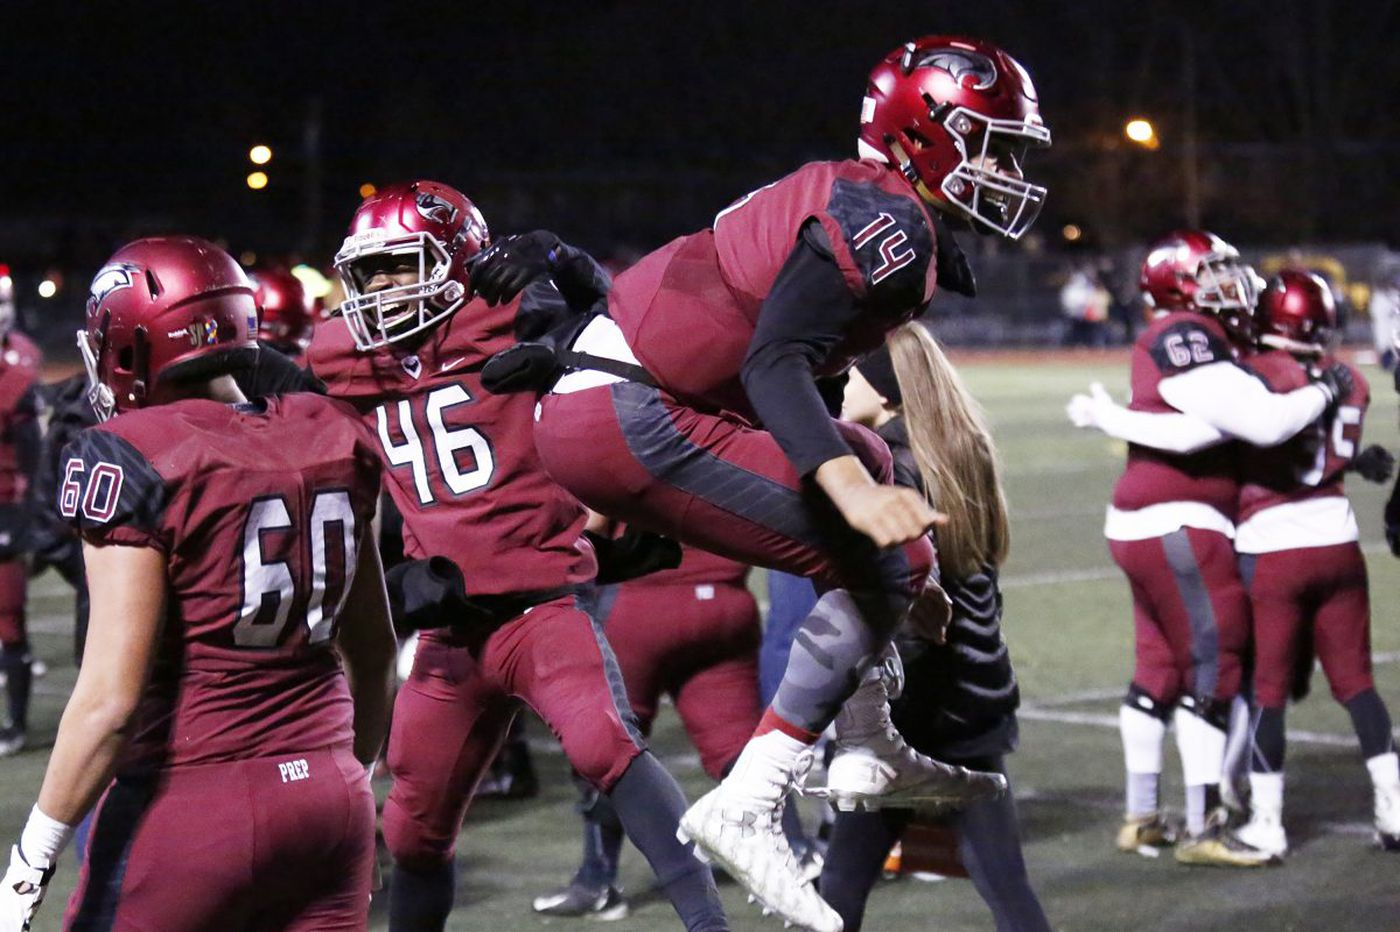 St. Joseph's Prep primed for another quarterfinal clash with Parkland